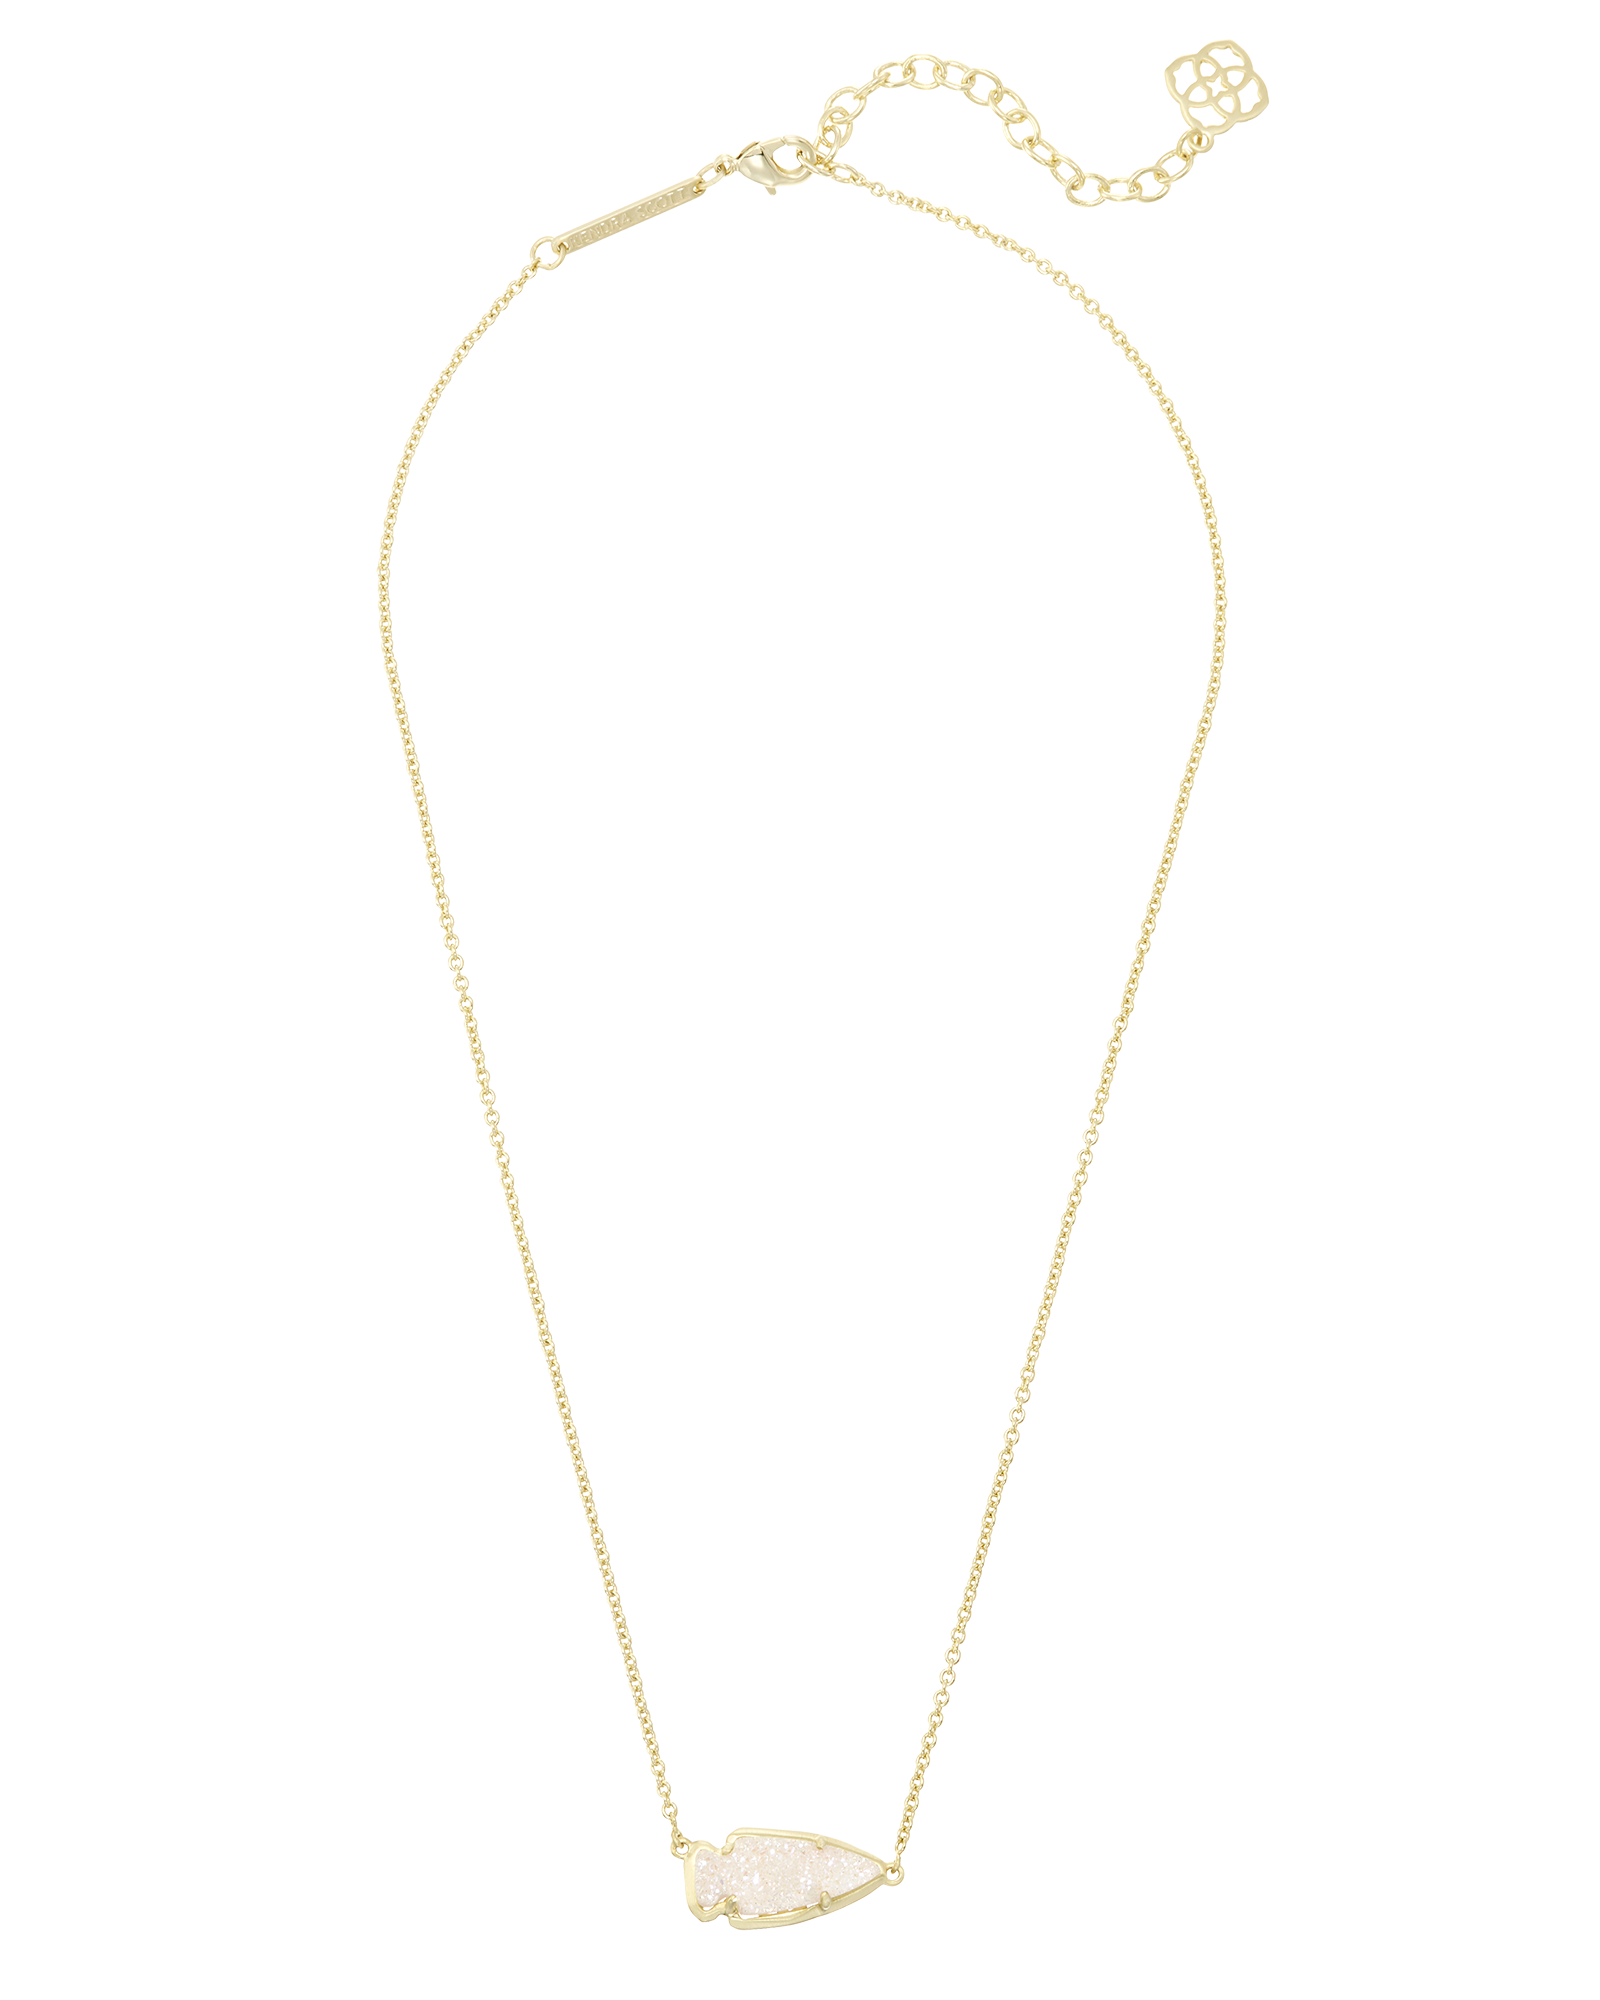 Kasey Arrowhead Pendant Necklace in Gold